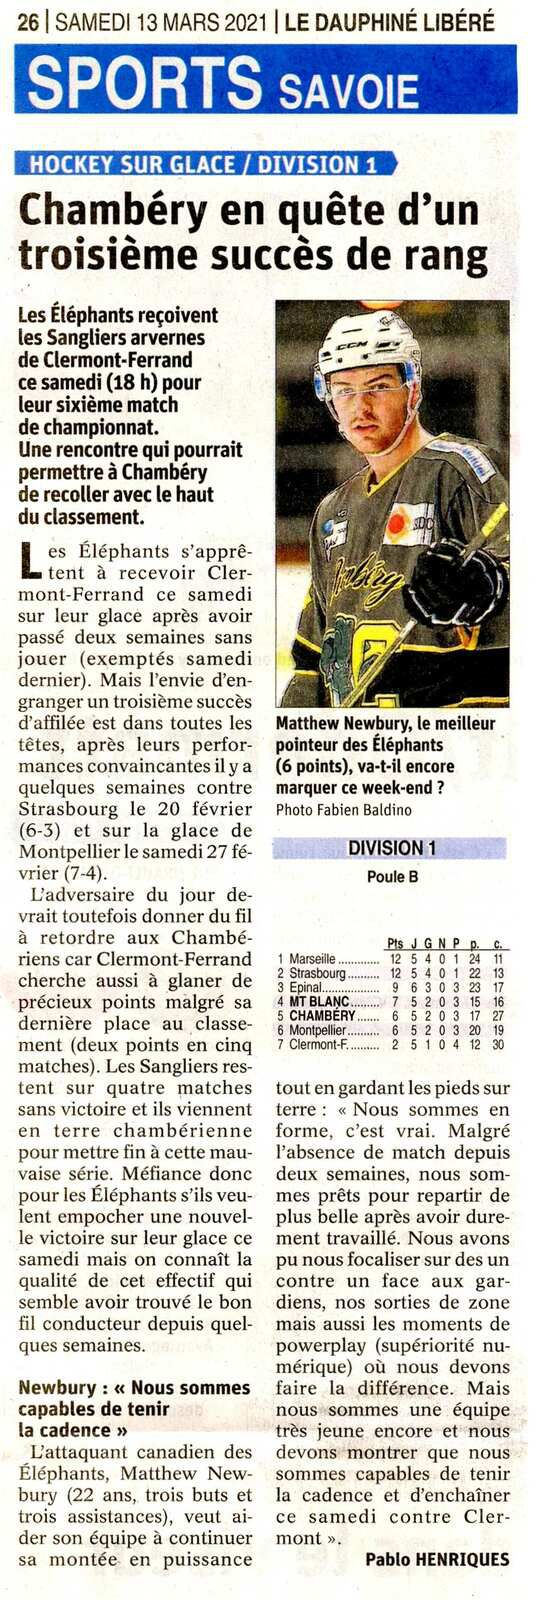 HOCKEY sur glace CHAMBERY - CLERMONT  article du DL avant match